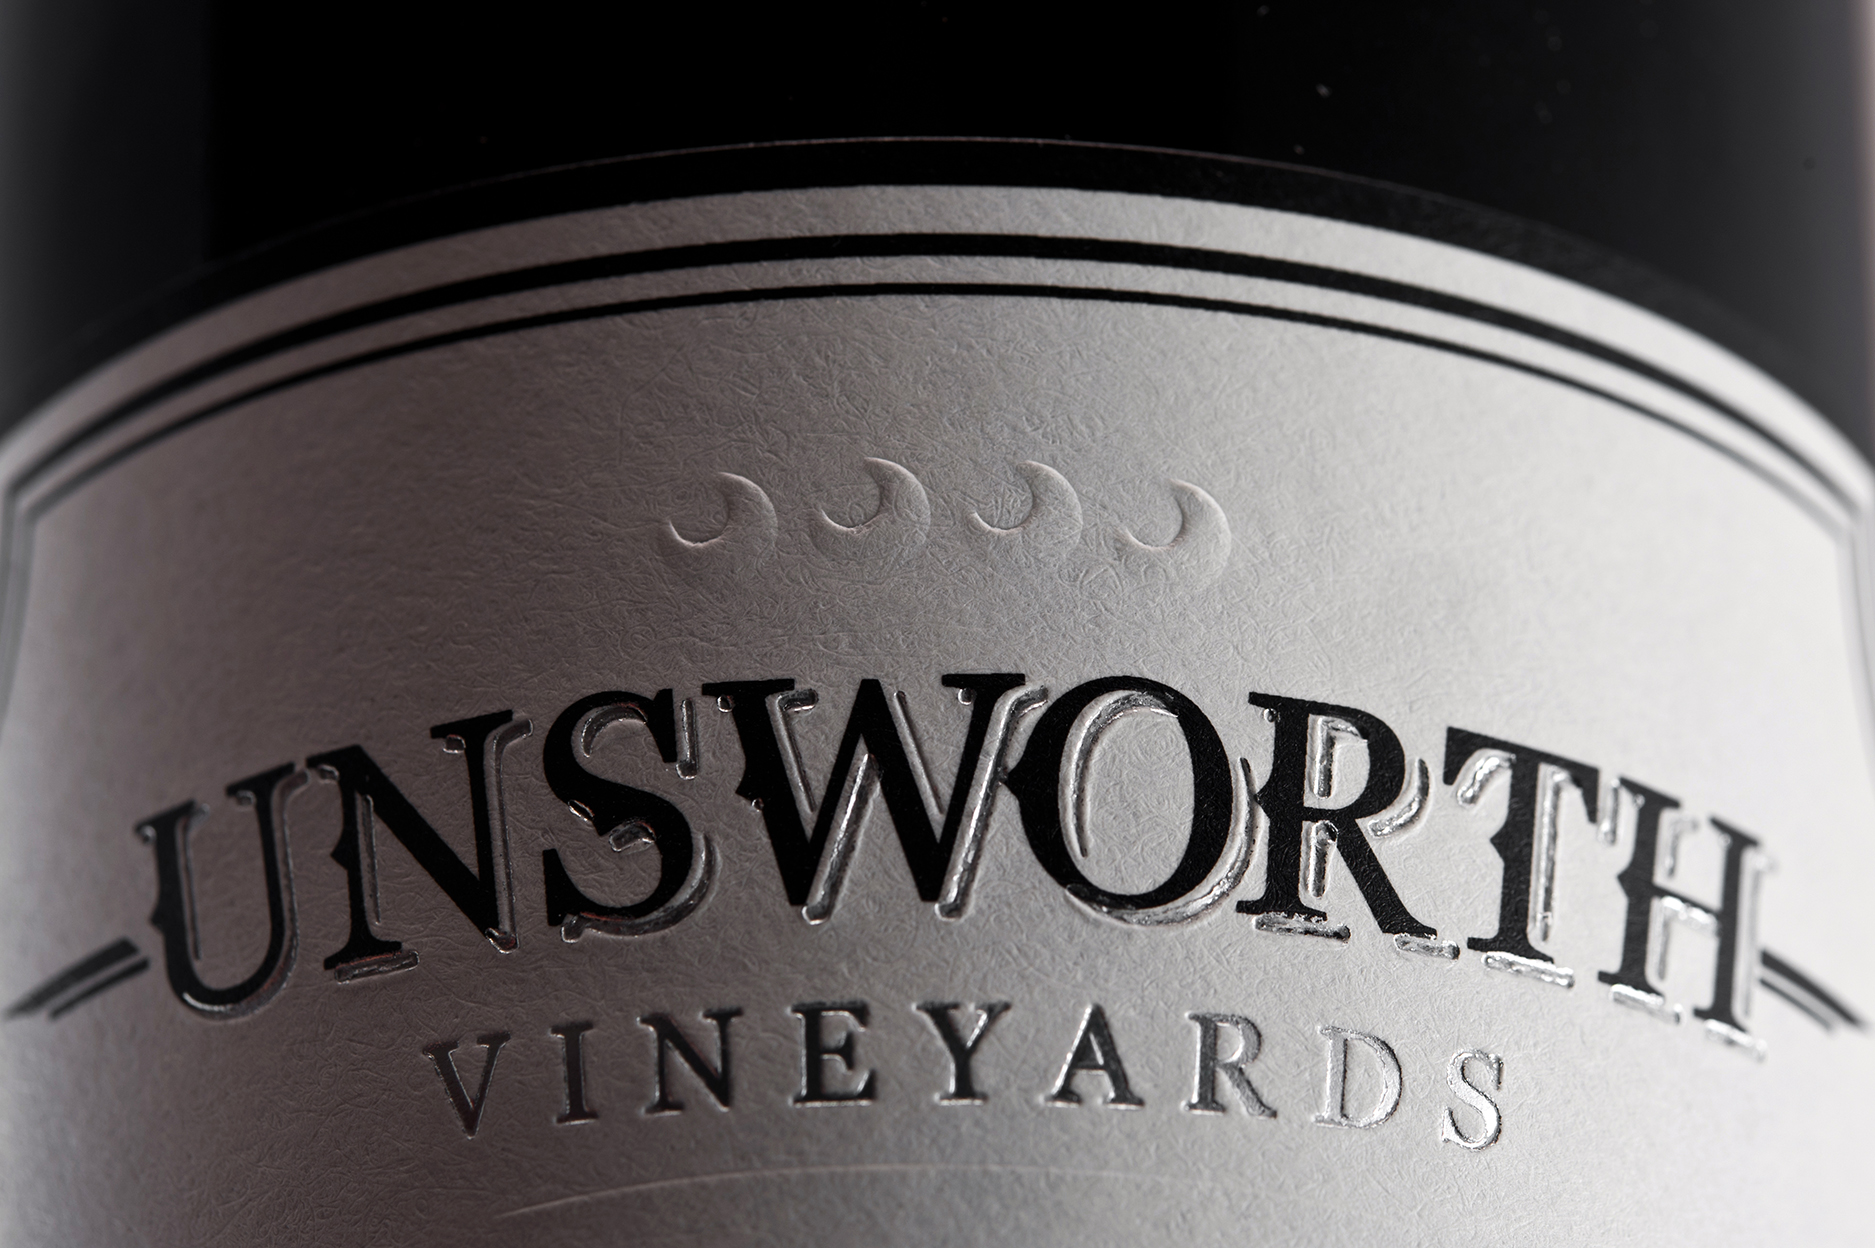 Branding and Packaging Design for Unsworth Vineyards